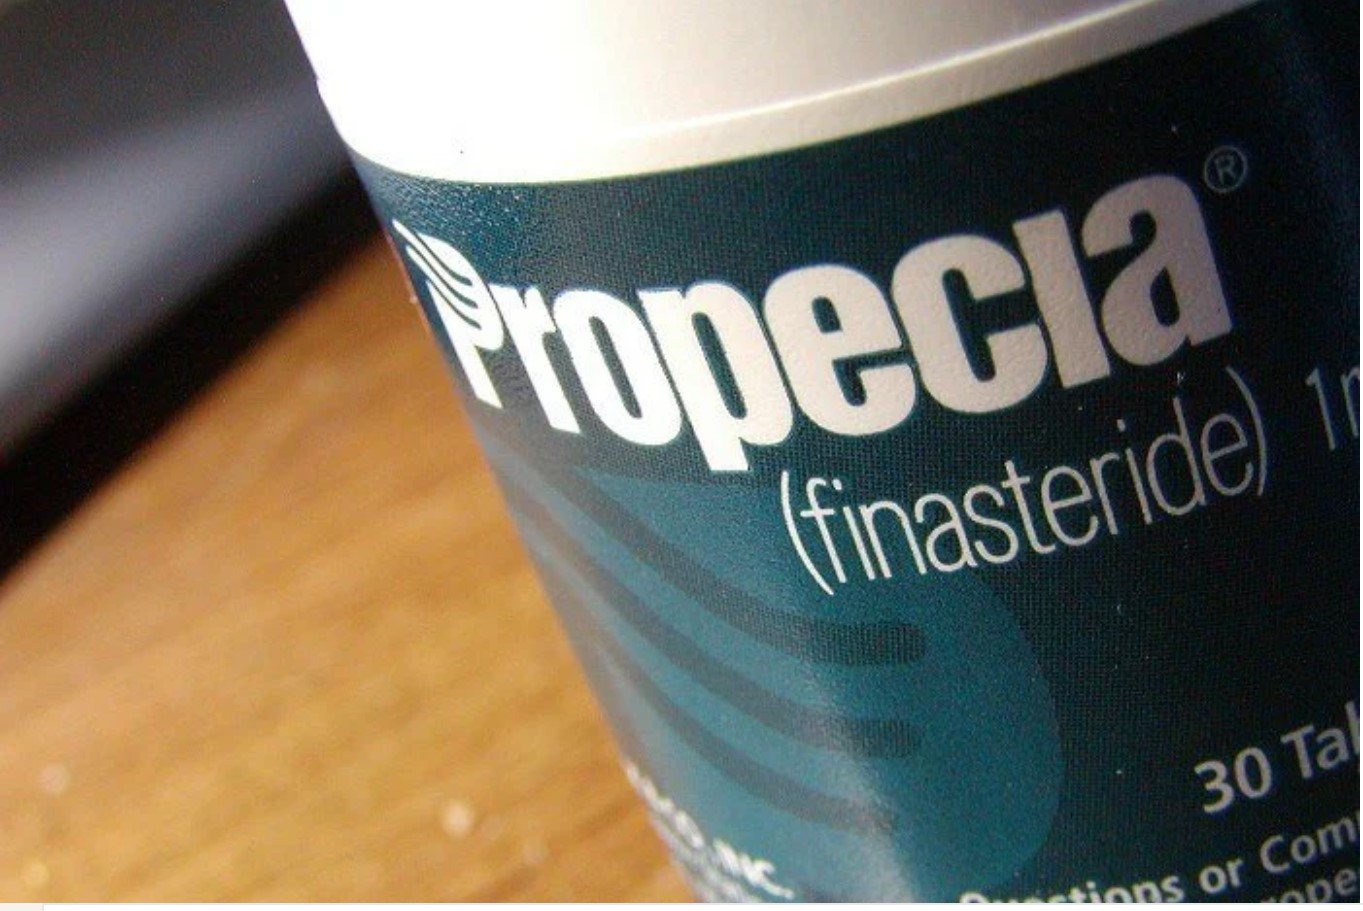 Finasteride by Propecia for Male Hair Loss